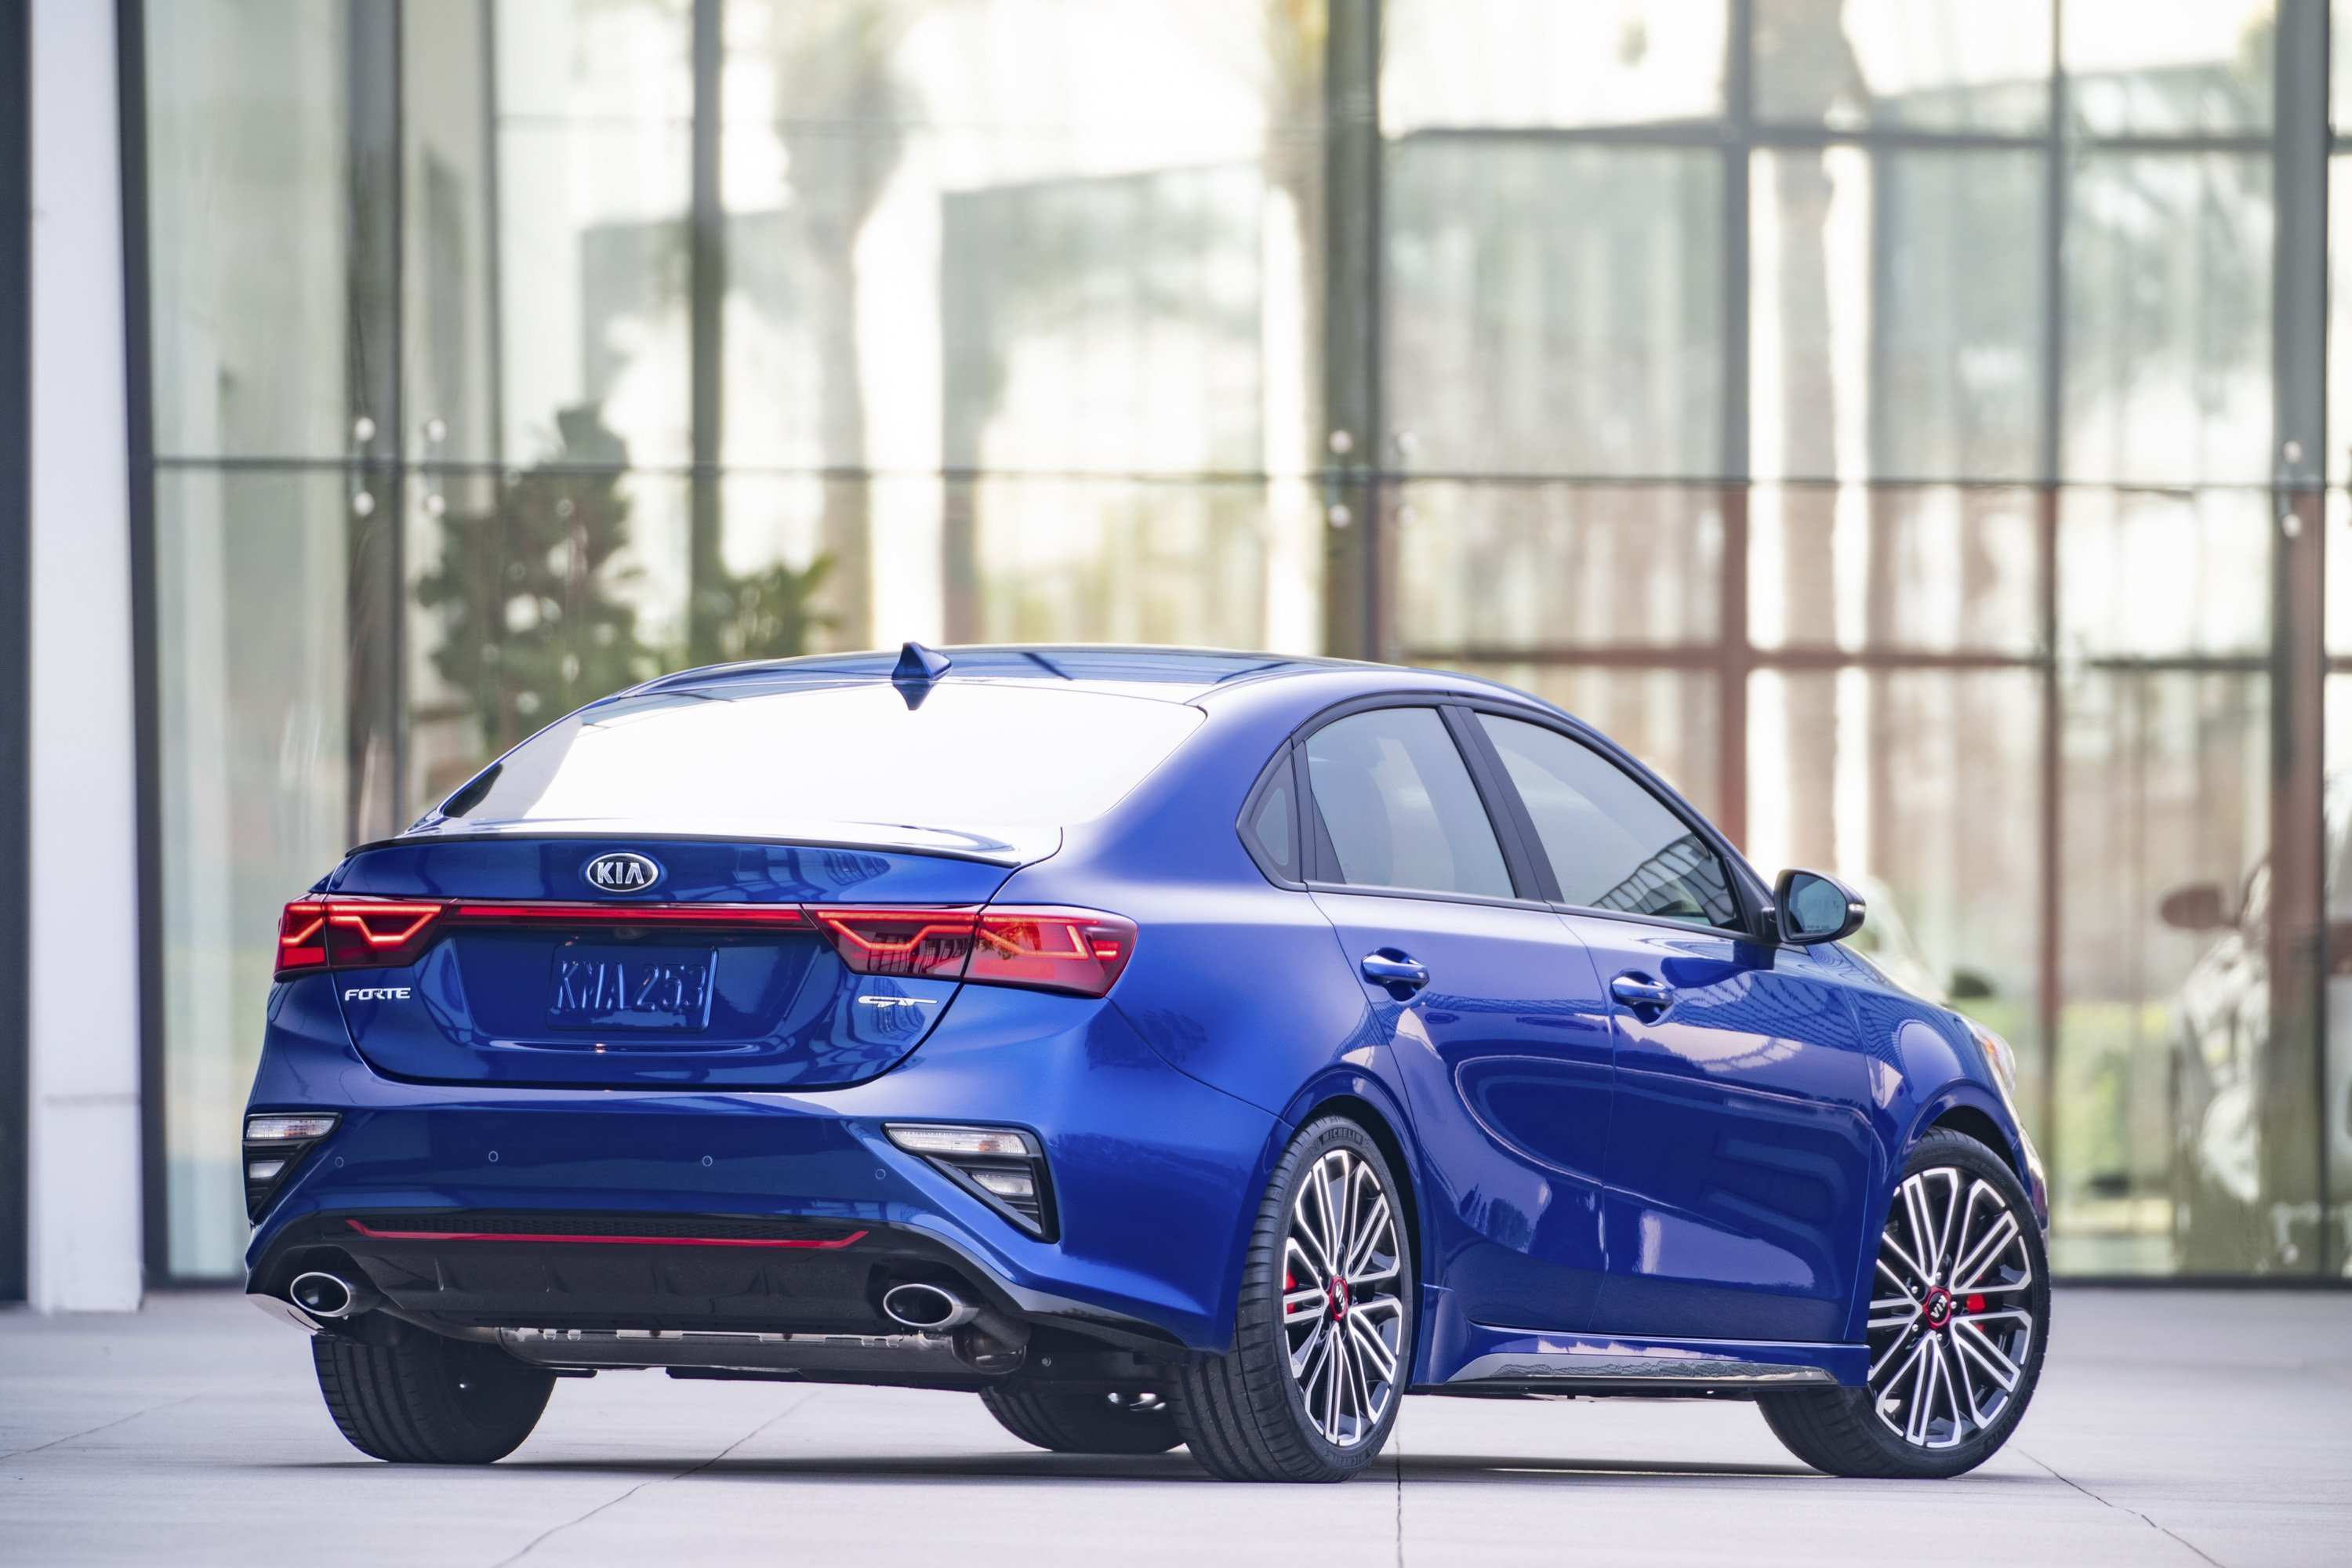 33 All New 2020 Kia Forte Hatchback Exterior And Interior